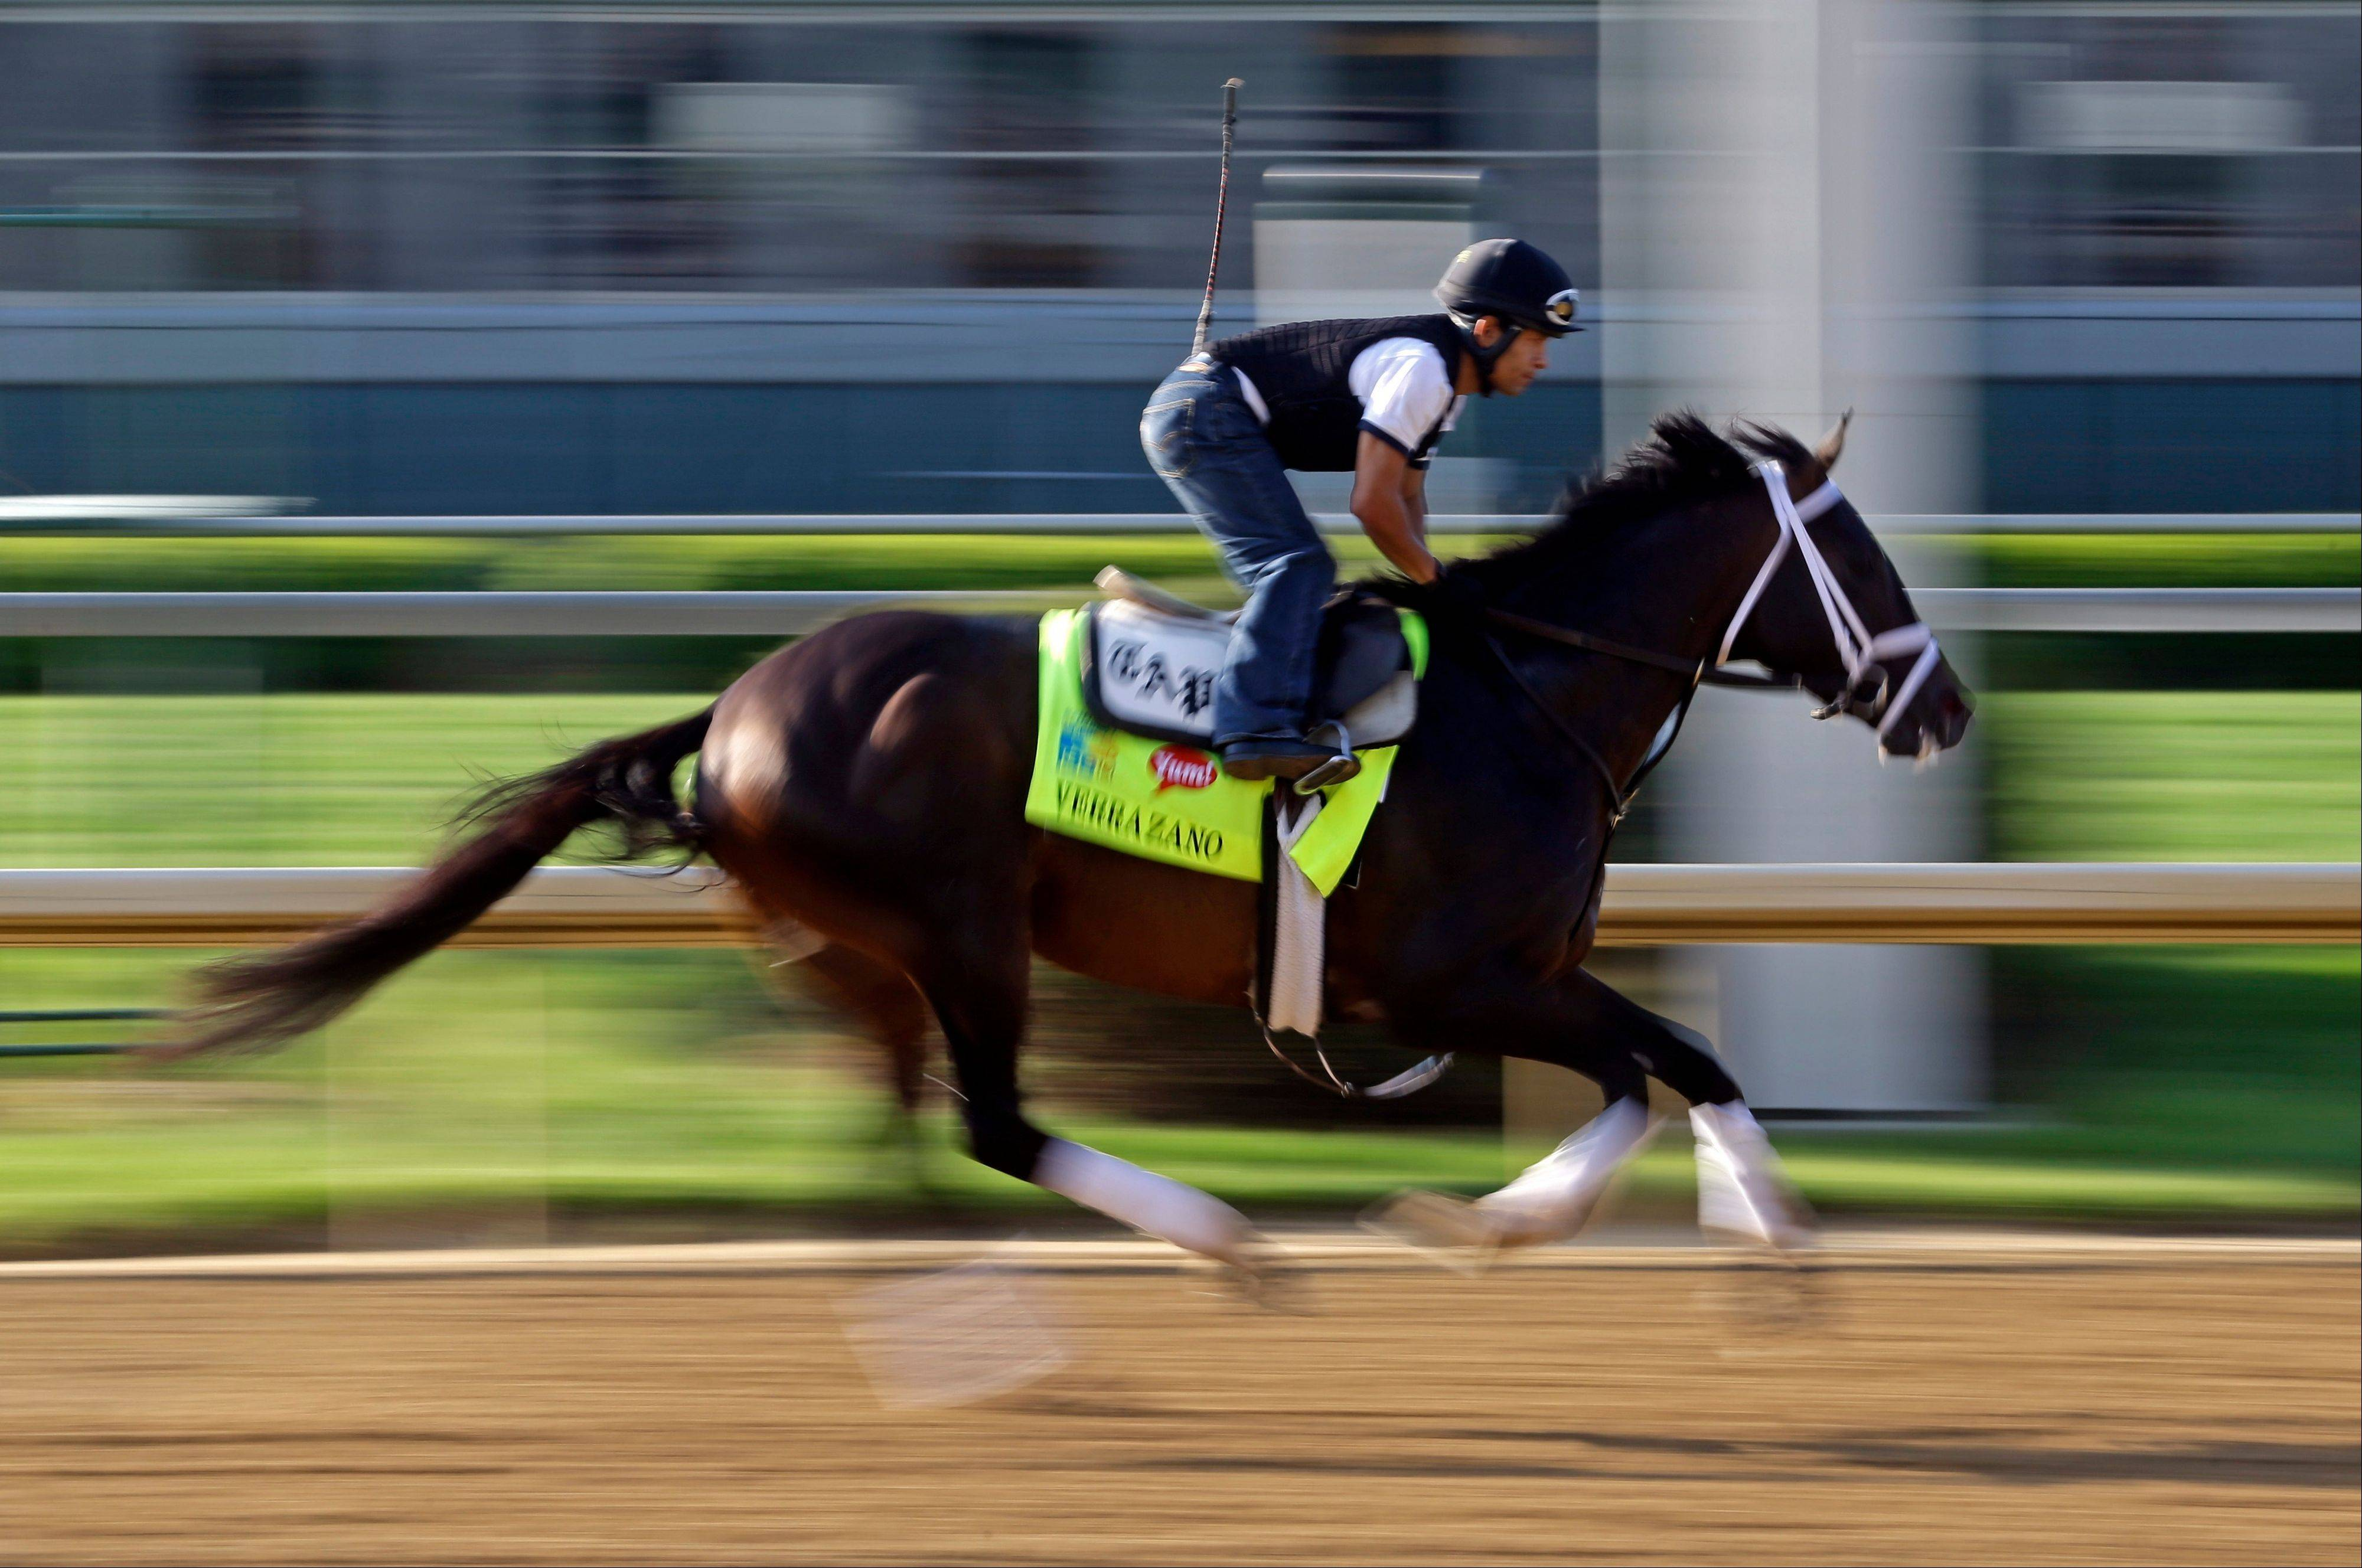 Since 1882, every horse that has won the Kentucky Derby started its racing career as a 2-year-old. In the past 57 years, 49 horses that debuted as 3-year-olds have tried and failed to win at Churchill Downs. It�s known as the Curse of Apollo, and now some say there�s never been a more likely candidate to break the curse than undefeated Verrazano, above.